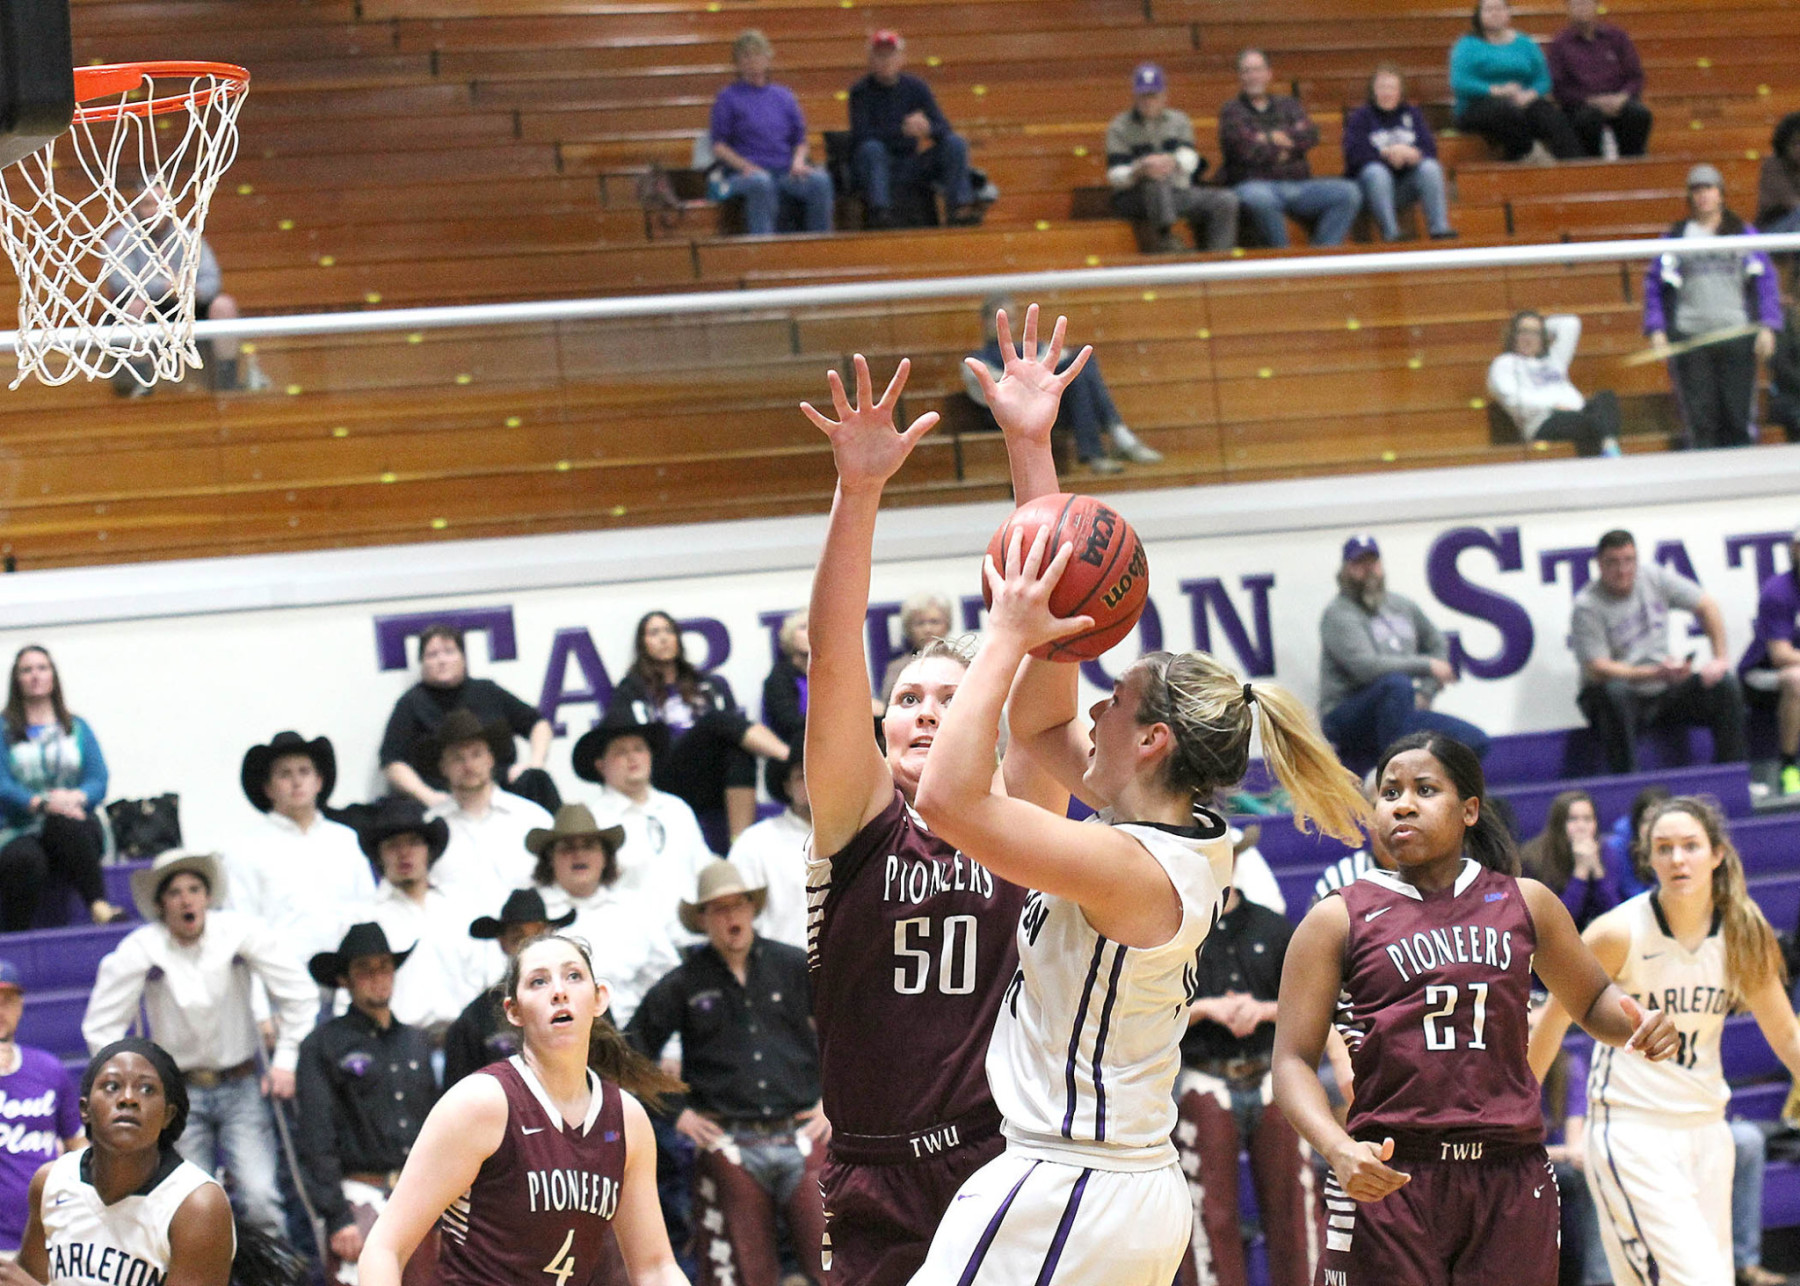 Raven McGrath hits a short jumper for two of her seven overtime points, helping Tarleton defeat Texas Woman's 82-76 Sunday at Wisdom Gym. || Photo by Dr. CHET MARTIN